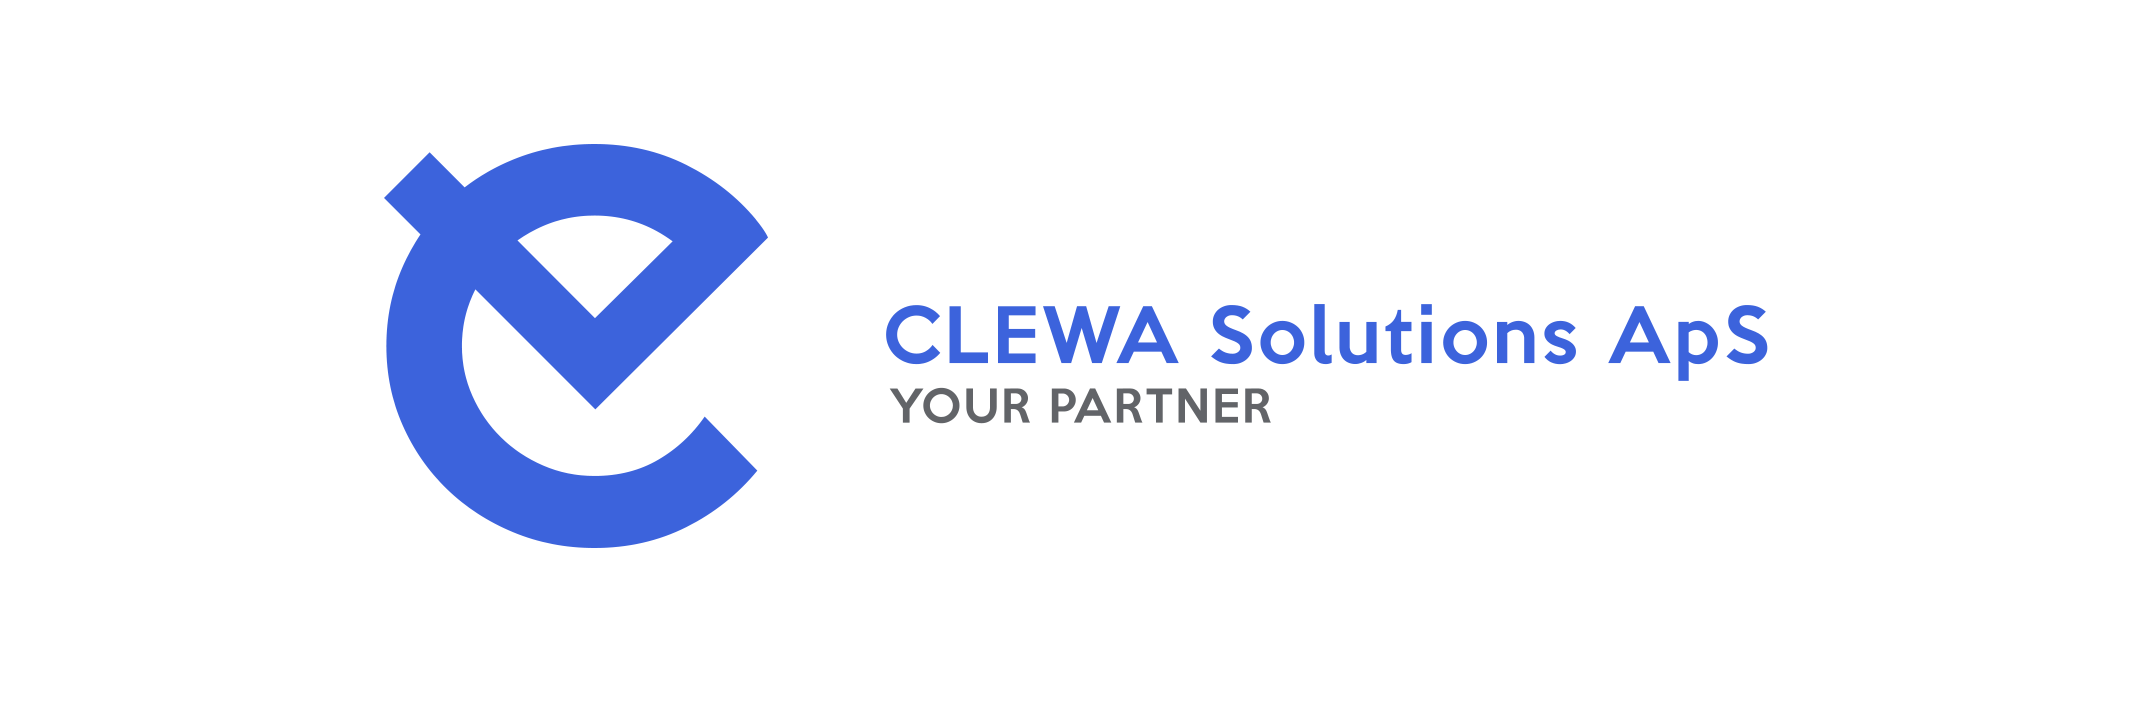 CLEWA Solutions ApS